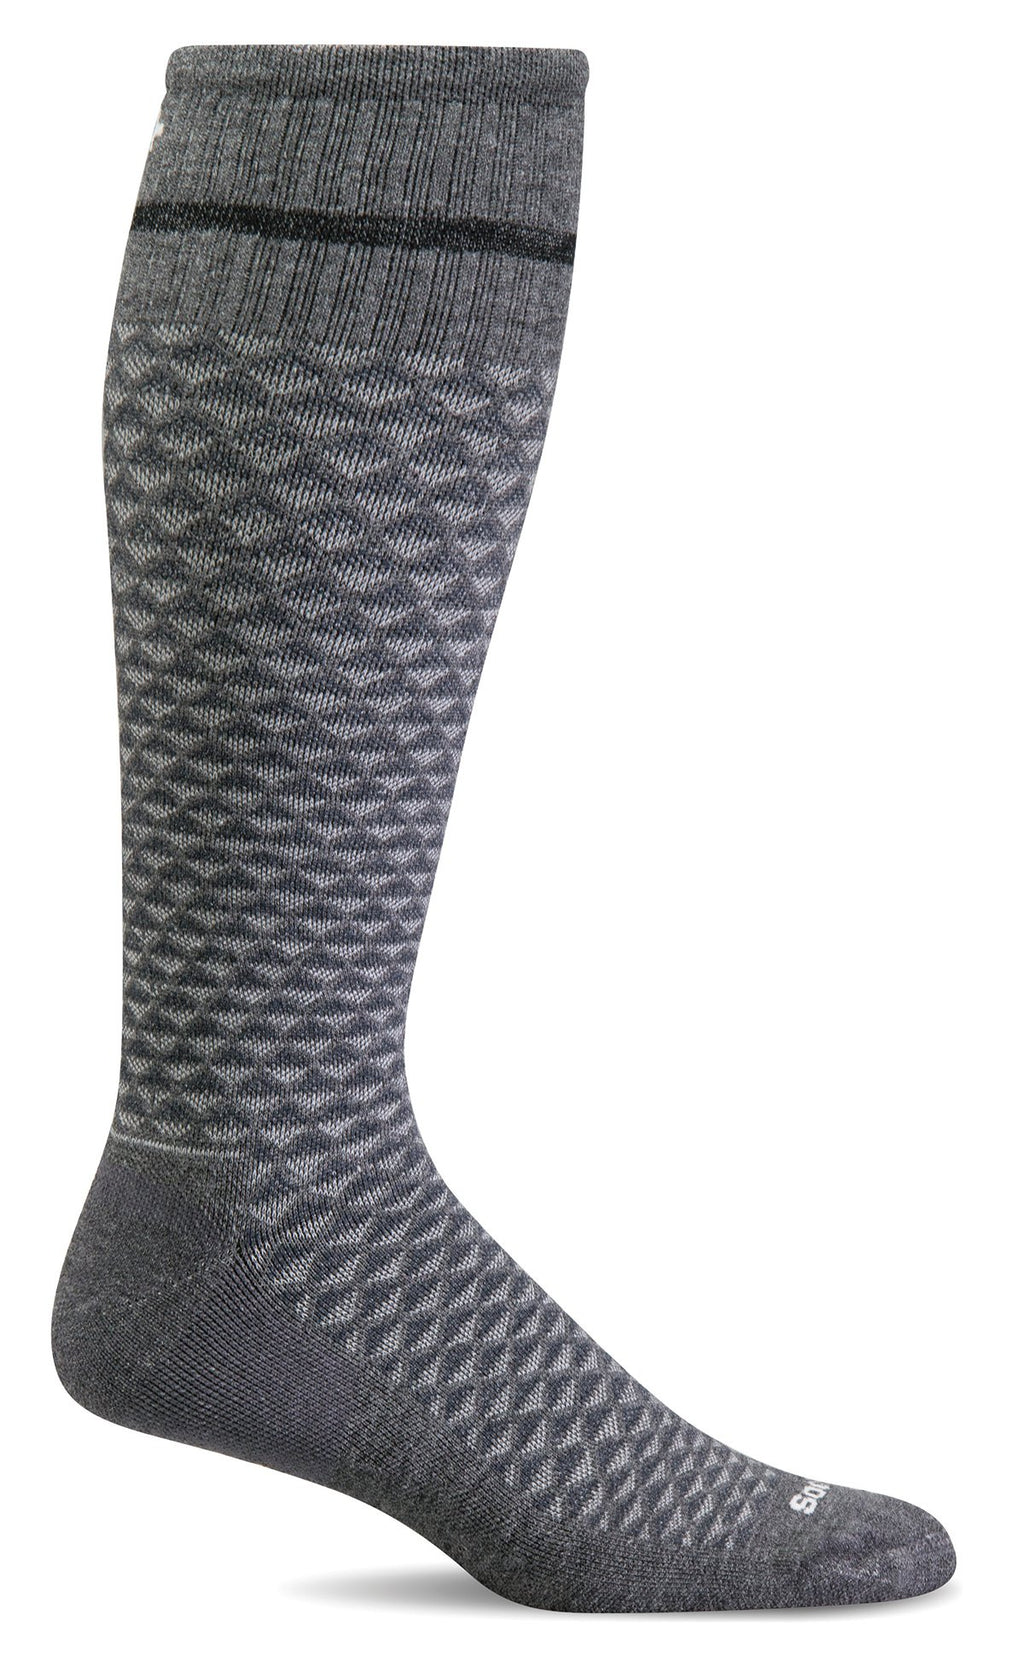 Men's Micro Mix | Graduated Compression Socks